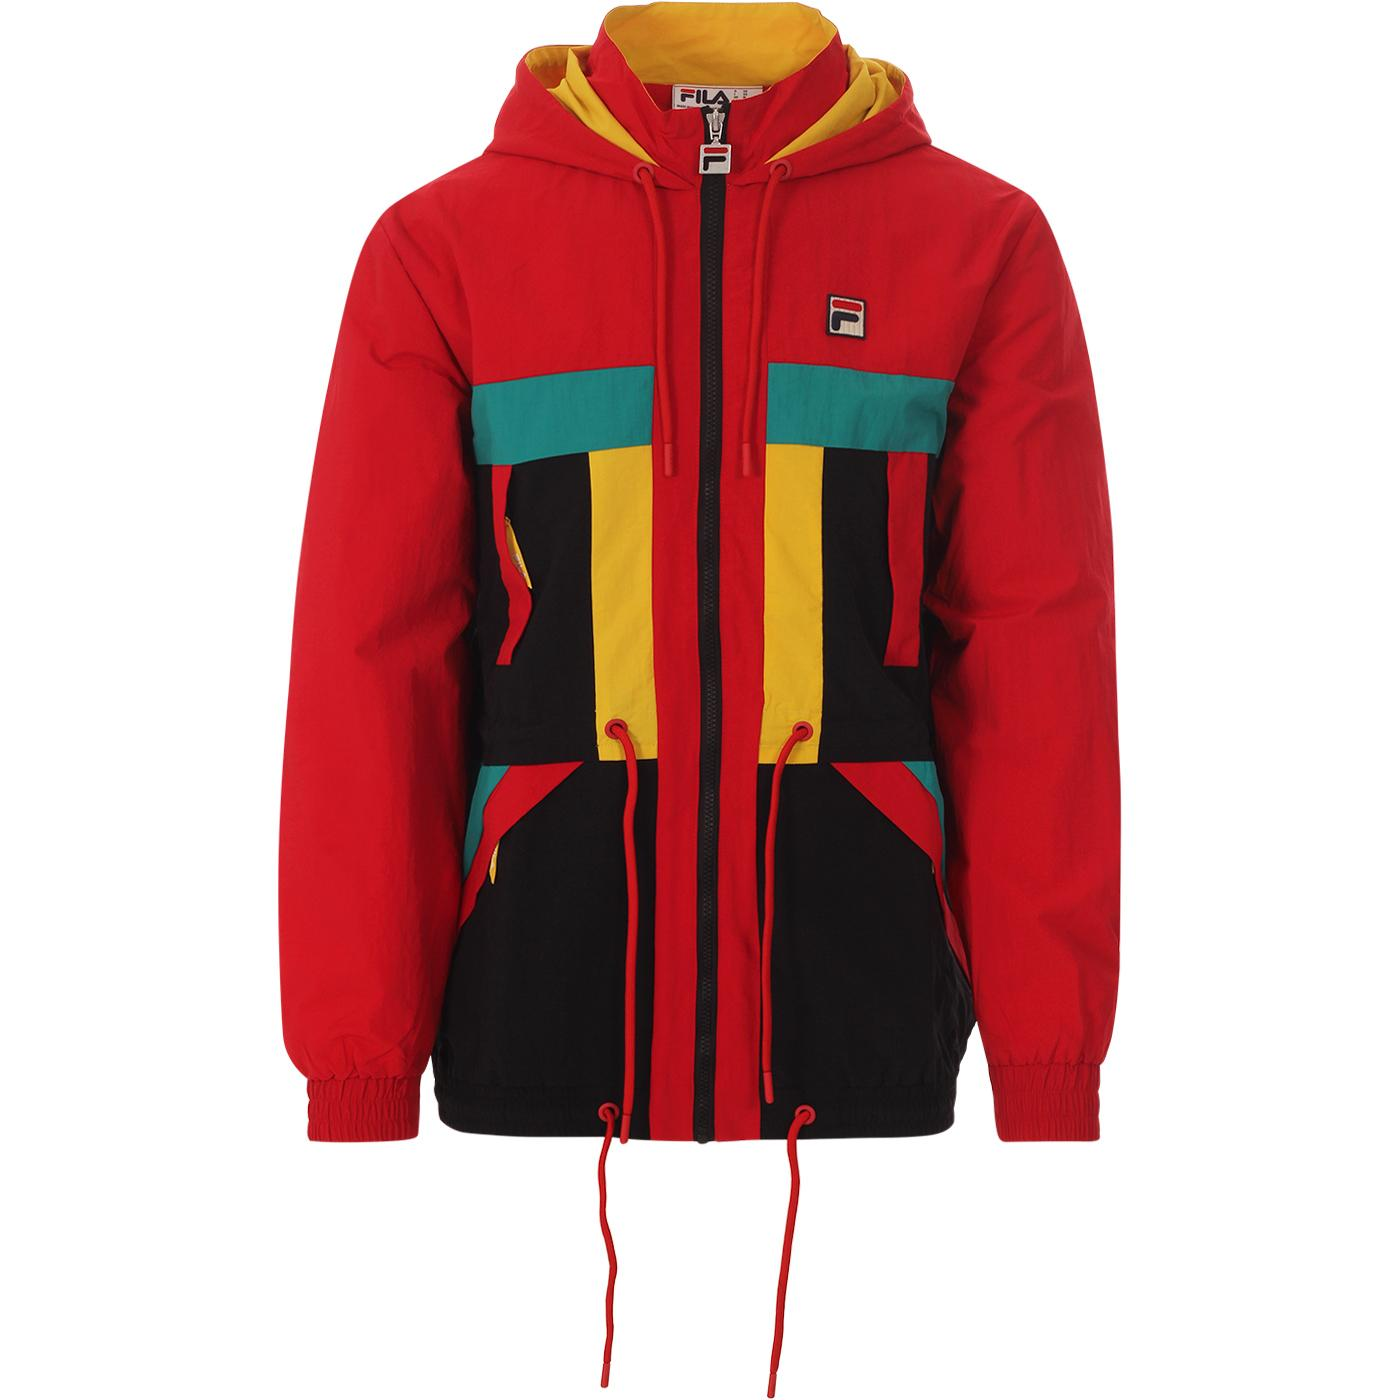 Marlin FILA VINTAGE Archive 80s Parka (Red/Black)